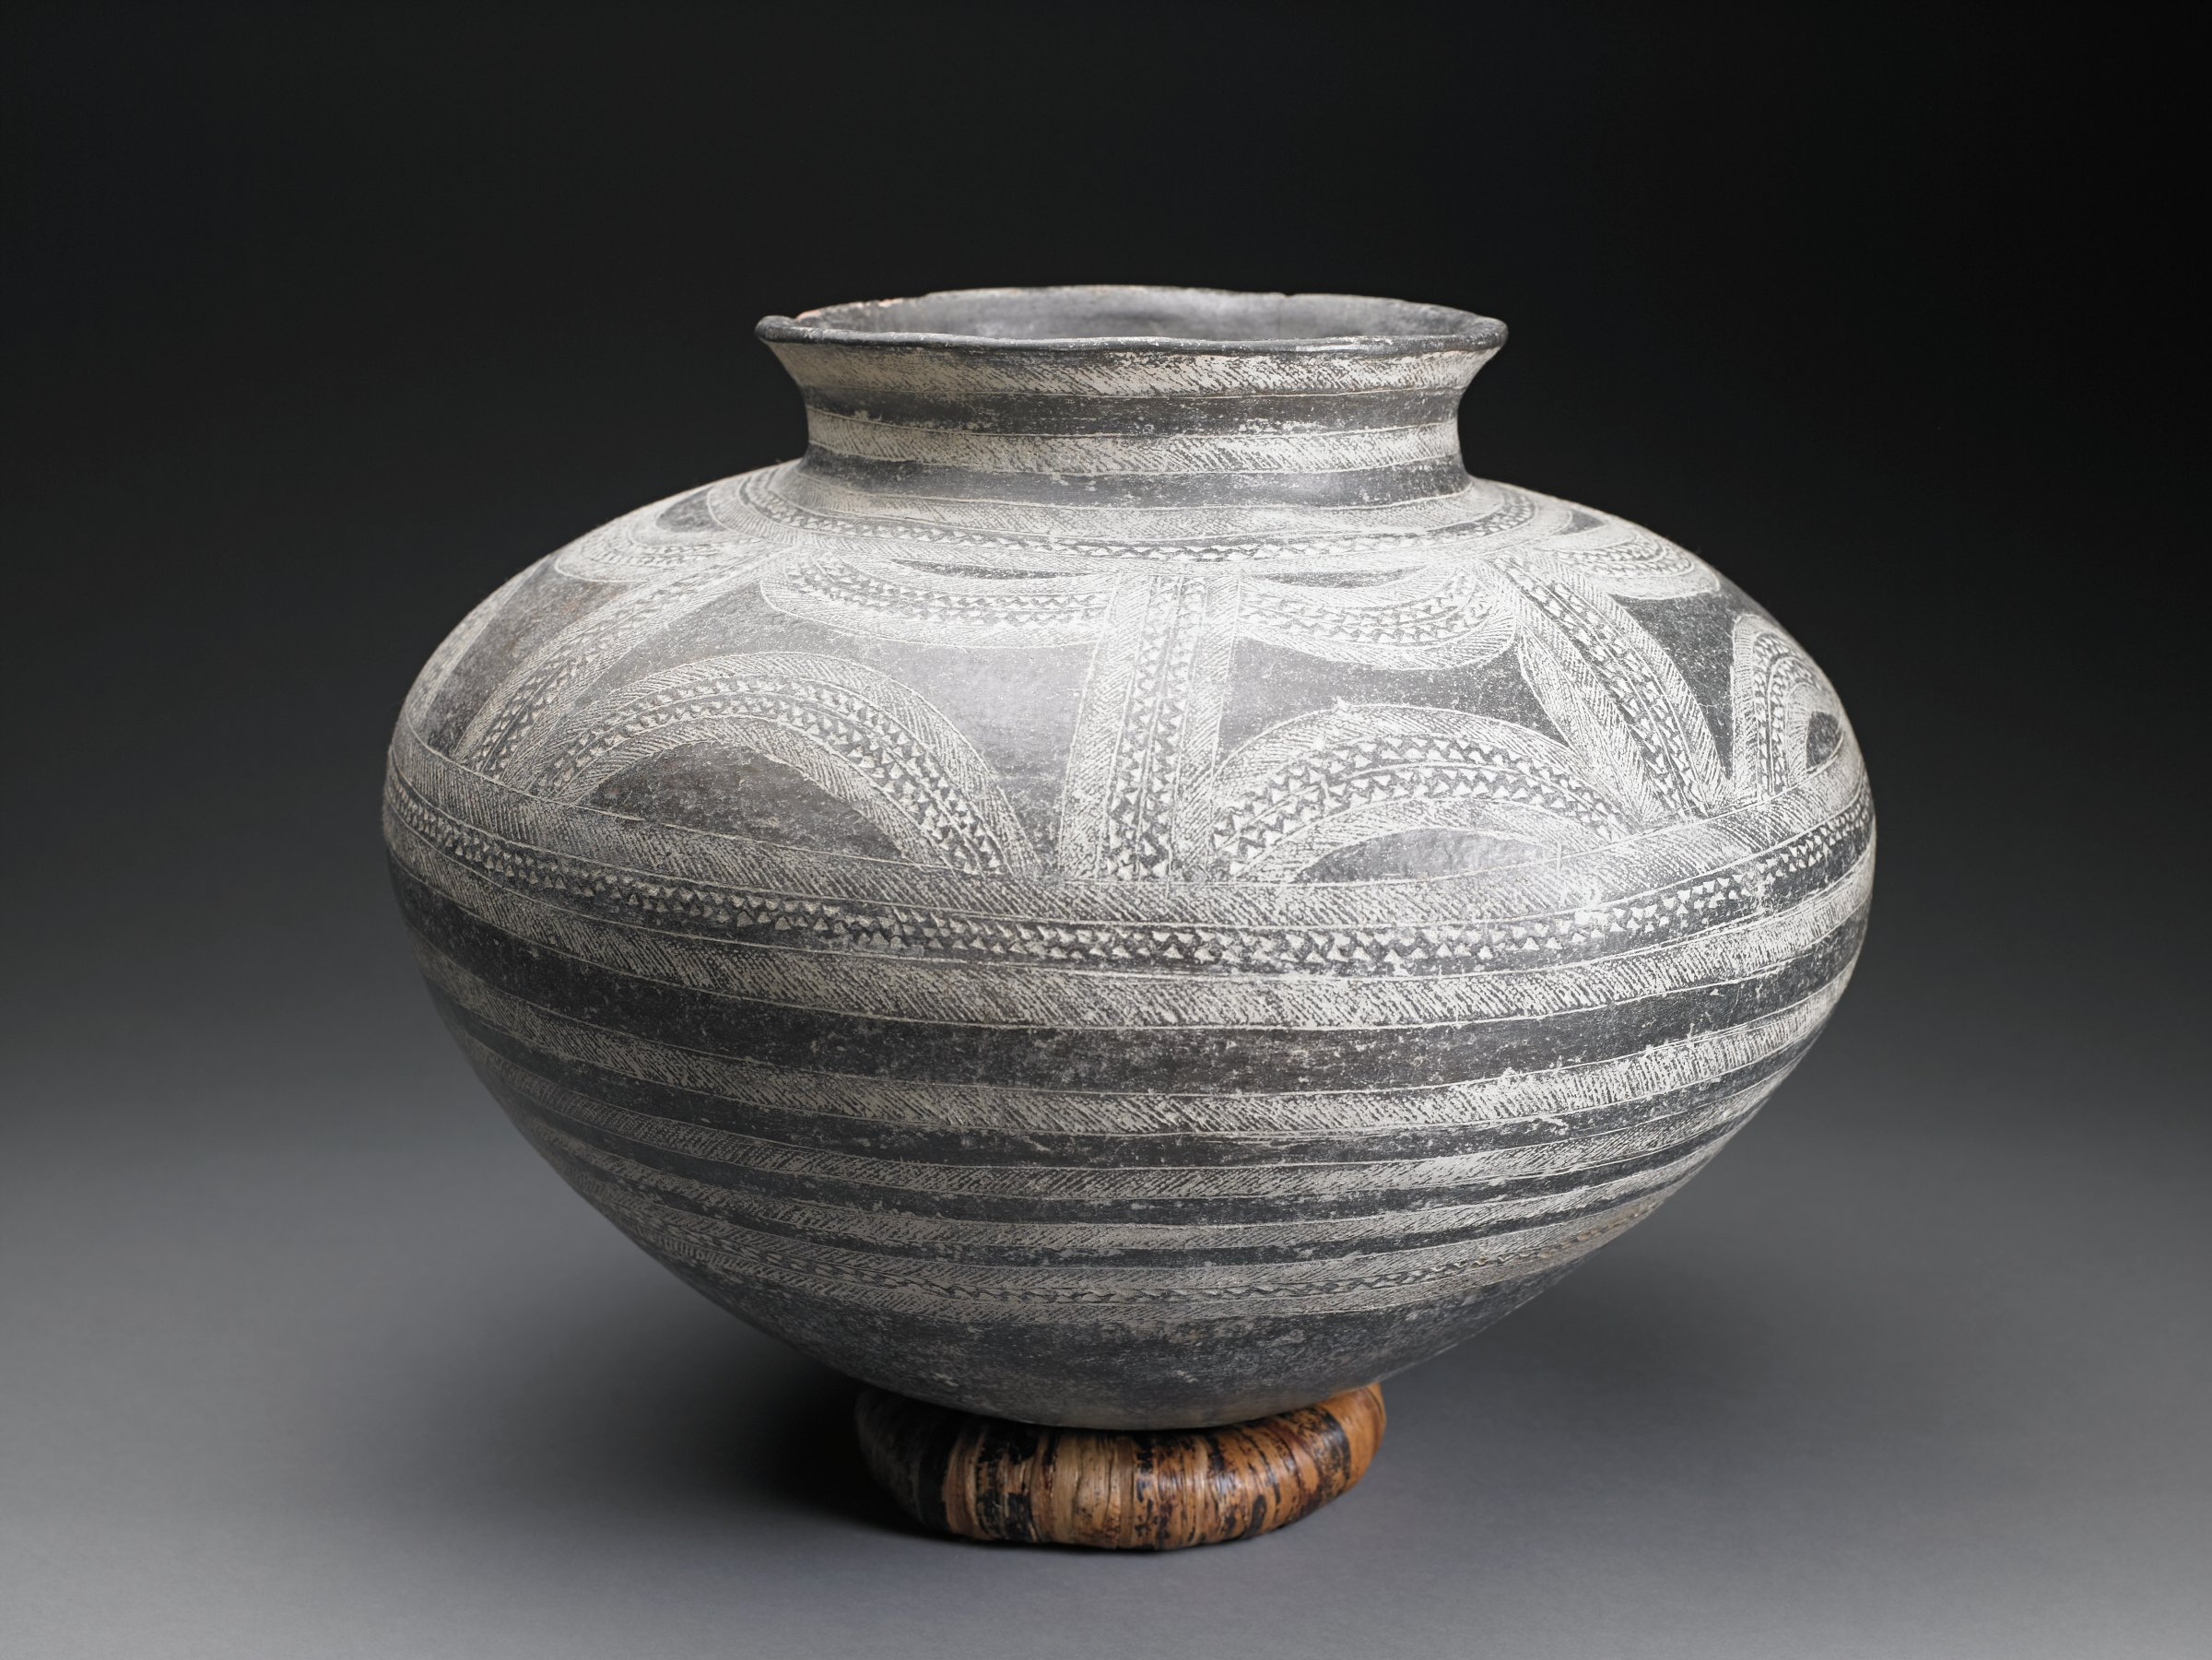 Wide, dark brown vessel with narrow mouth has short, flared lip and narrow base. Incised decorative patterns filled with white pigment include parallel bands around body of vessel, and opposing half circles on shoulder.